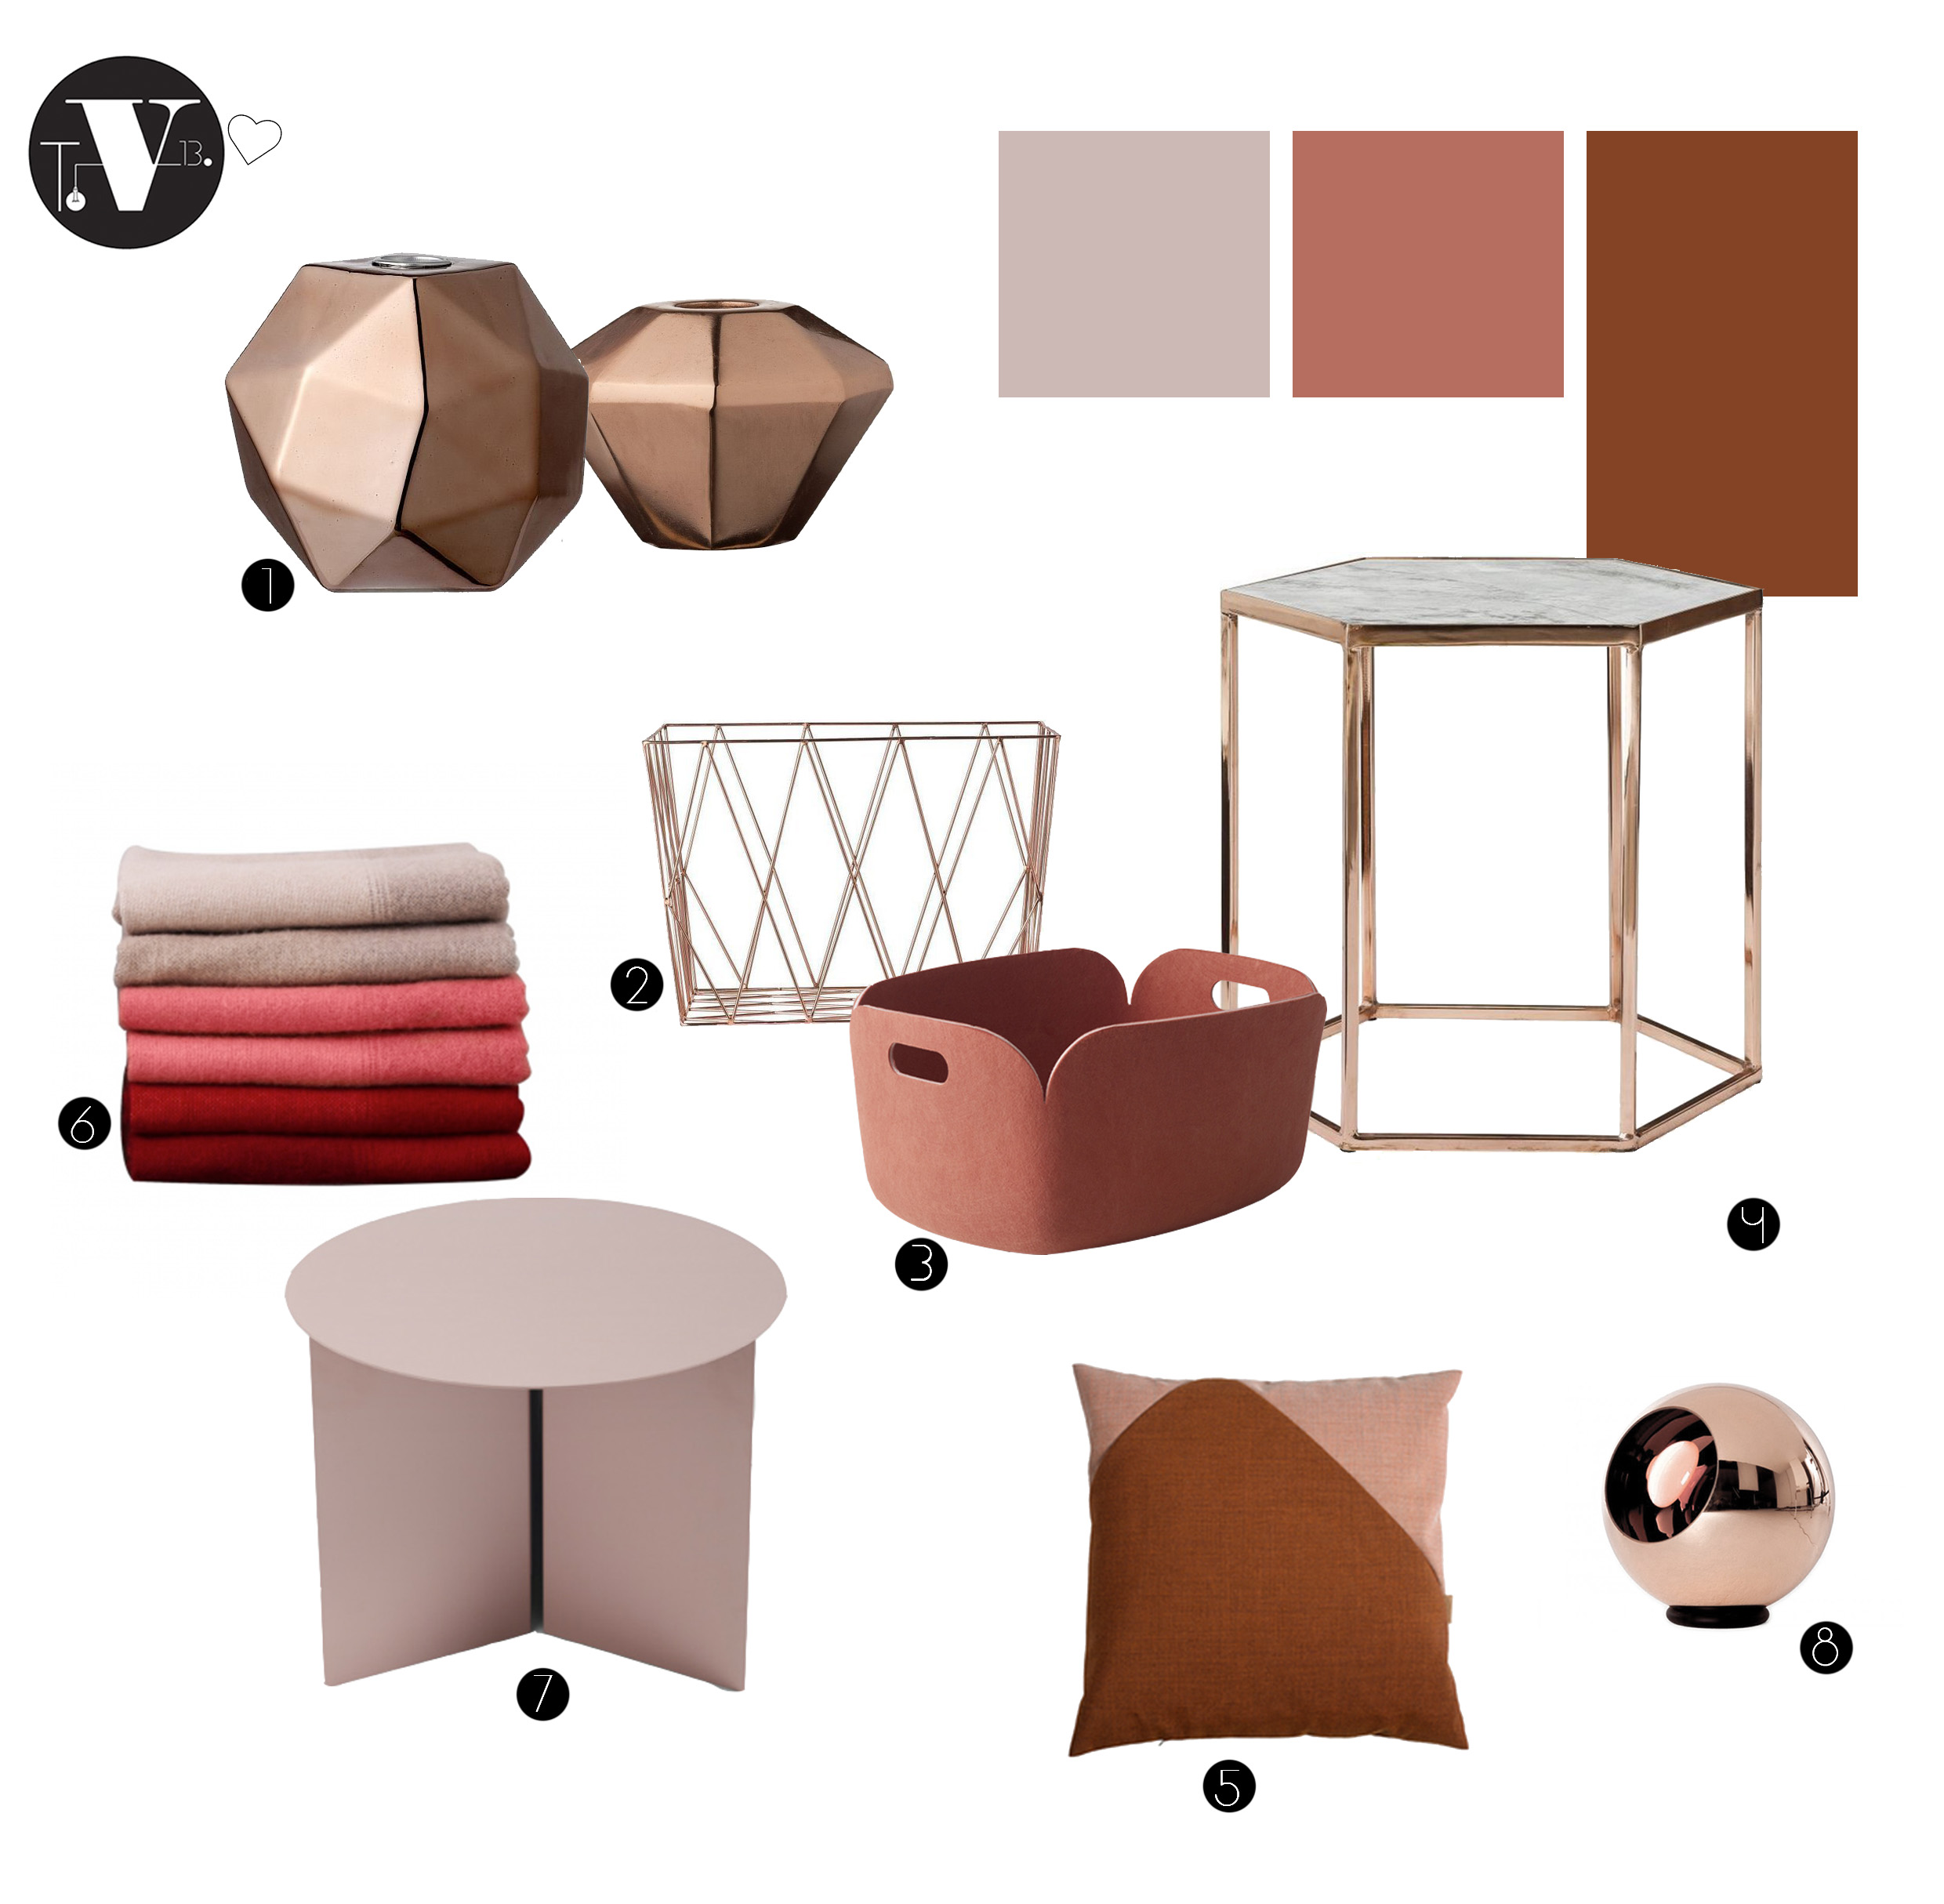 Copper and peachy pink colors of 2015 for Interieur kortrijk 2015